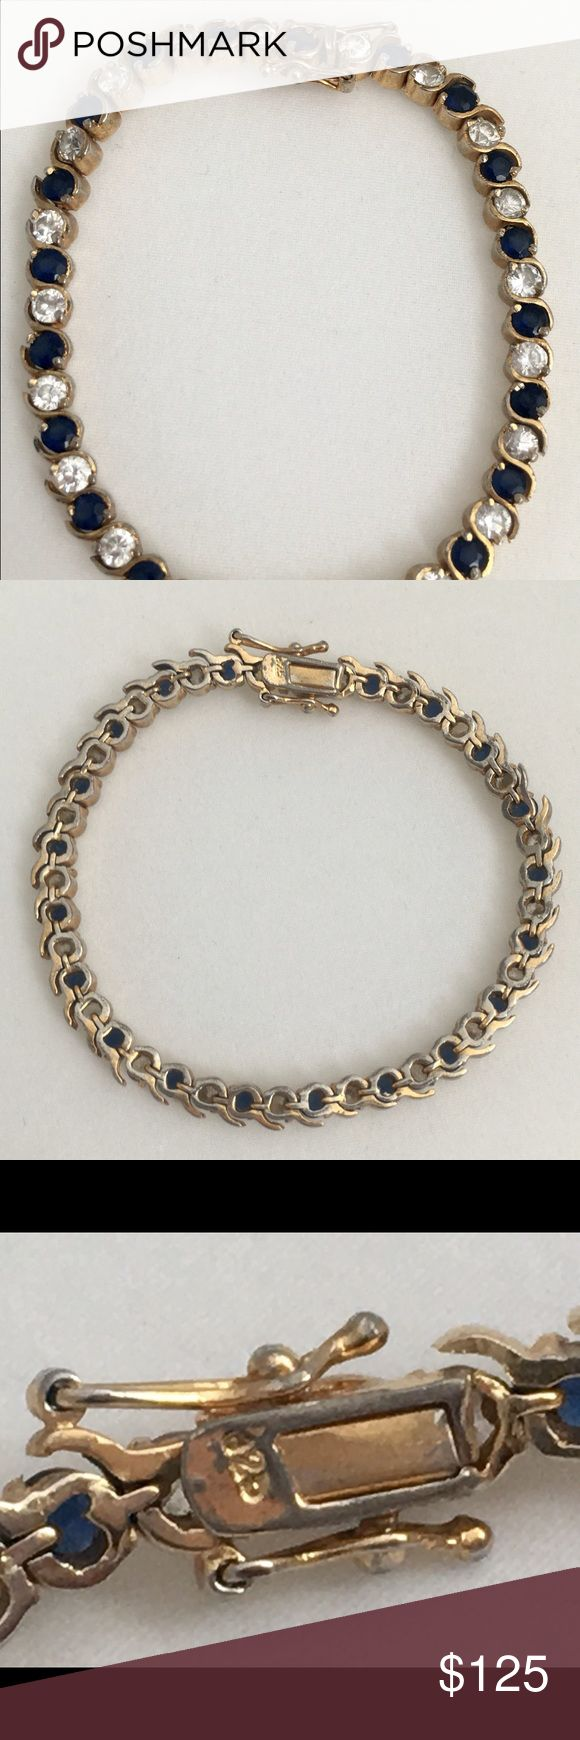 "Gold Over 925 Silver Sapphire Tennis Bracelet 7.5 Lovely gold over sterling silver tennis bracelet with sparkling 21 Dark Blue Sapphires between them has secure and tight rhinestone sparkle. Push in Clasp with Safety Latches on Sides. Clasp is marked ""925"".   Measurements : Size: 7.5"" Long and Weight : 17.5 Grams Jewelry Bracelets"